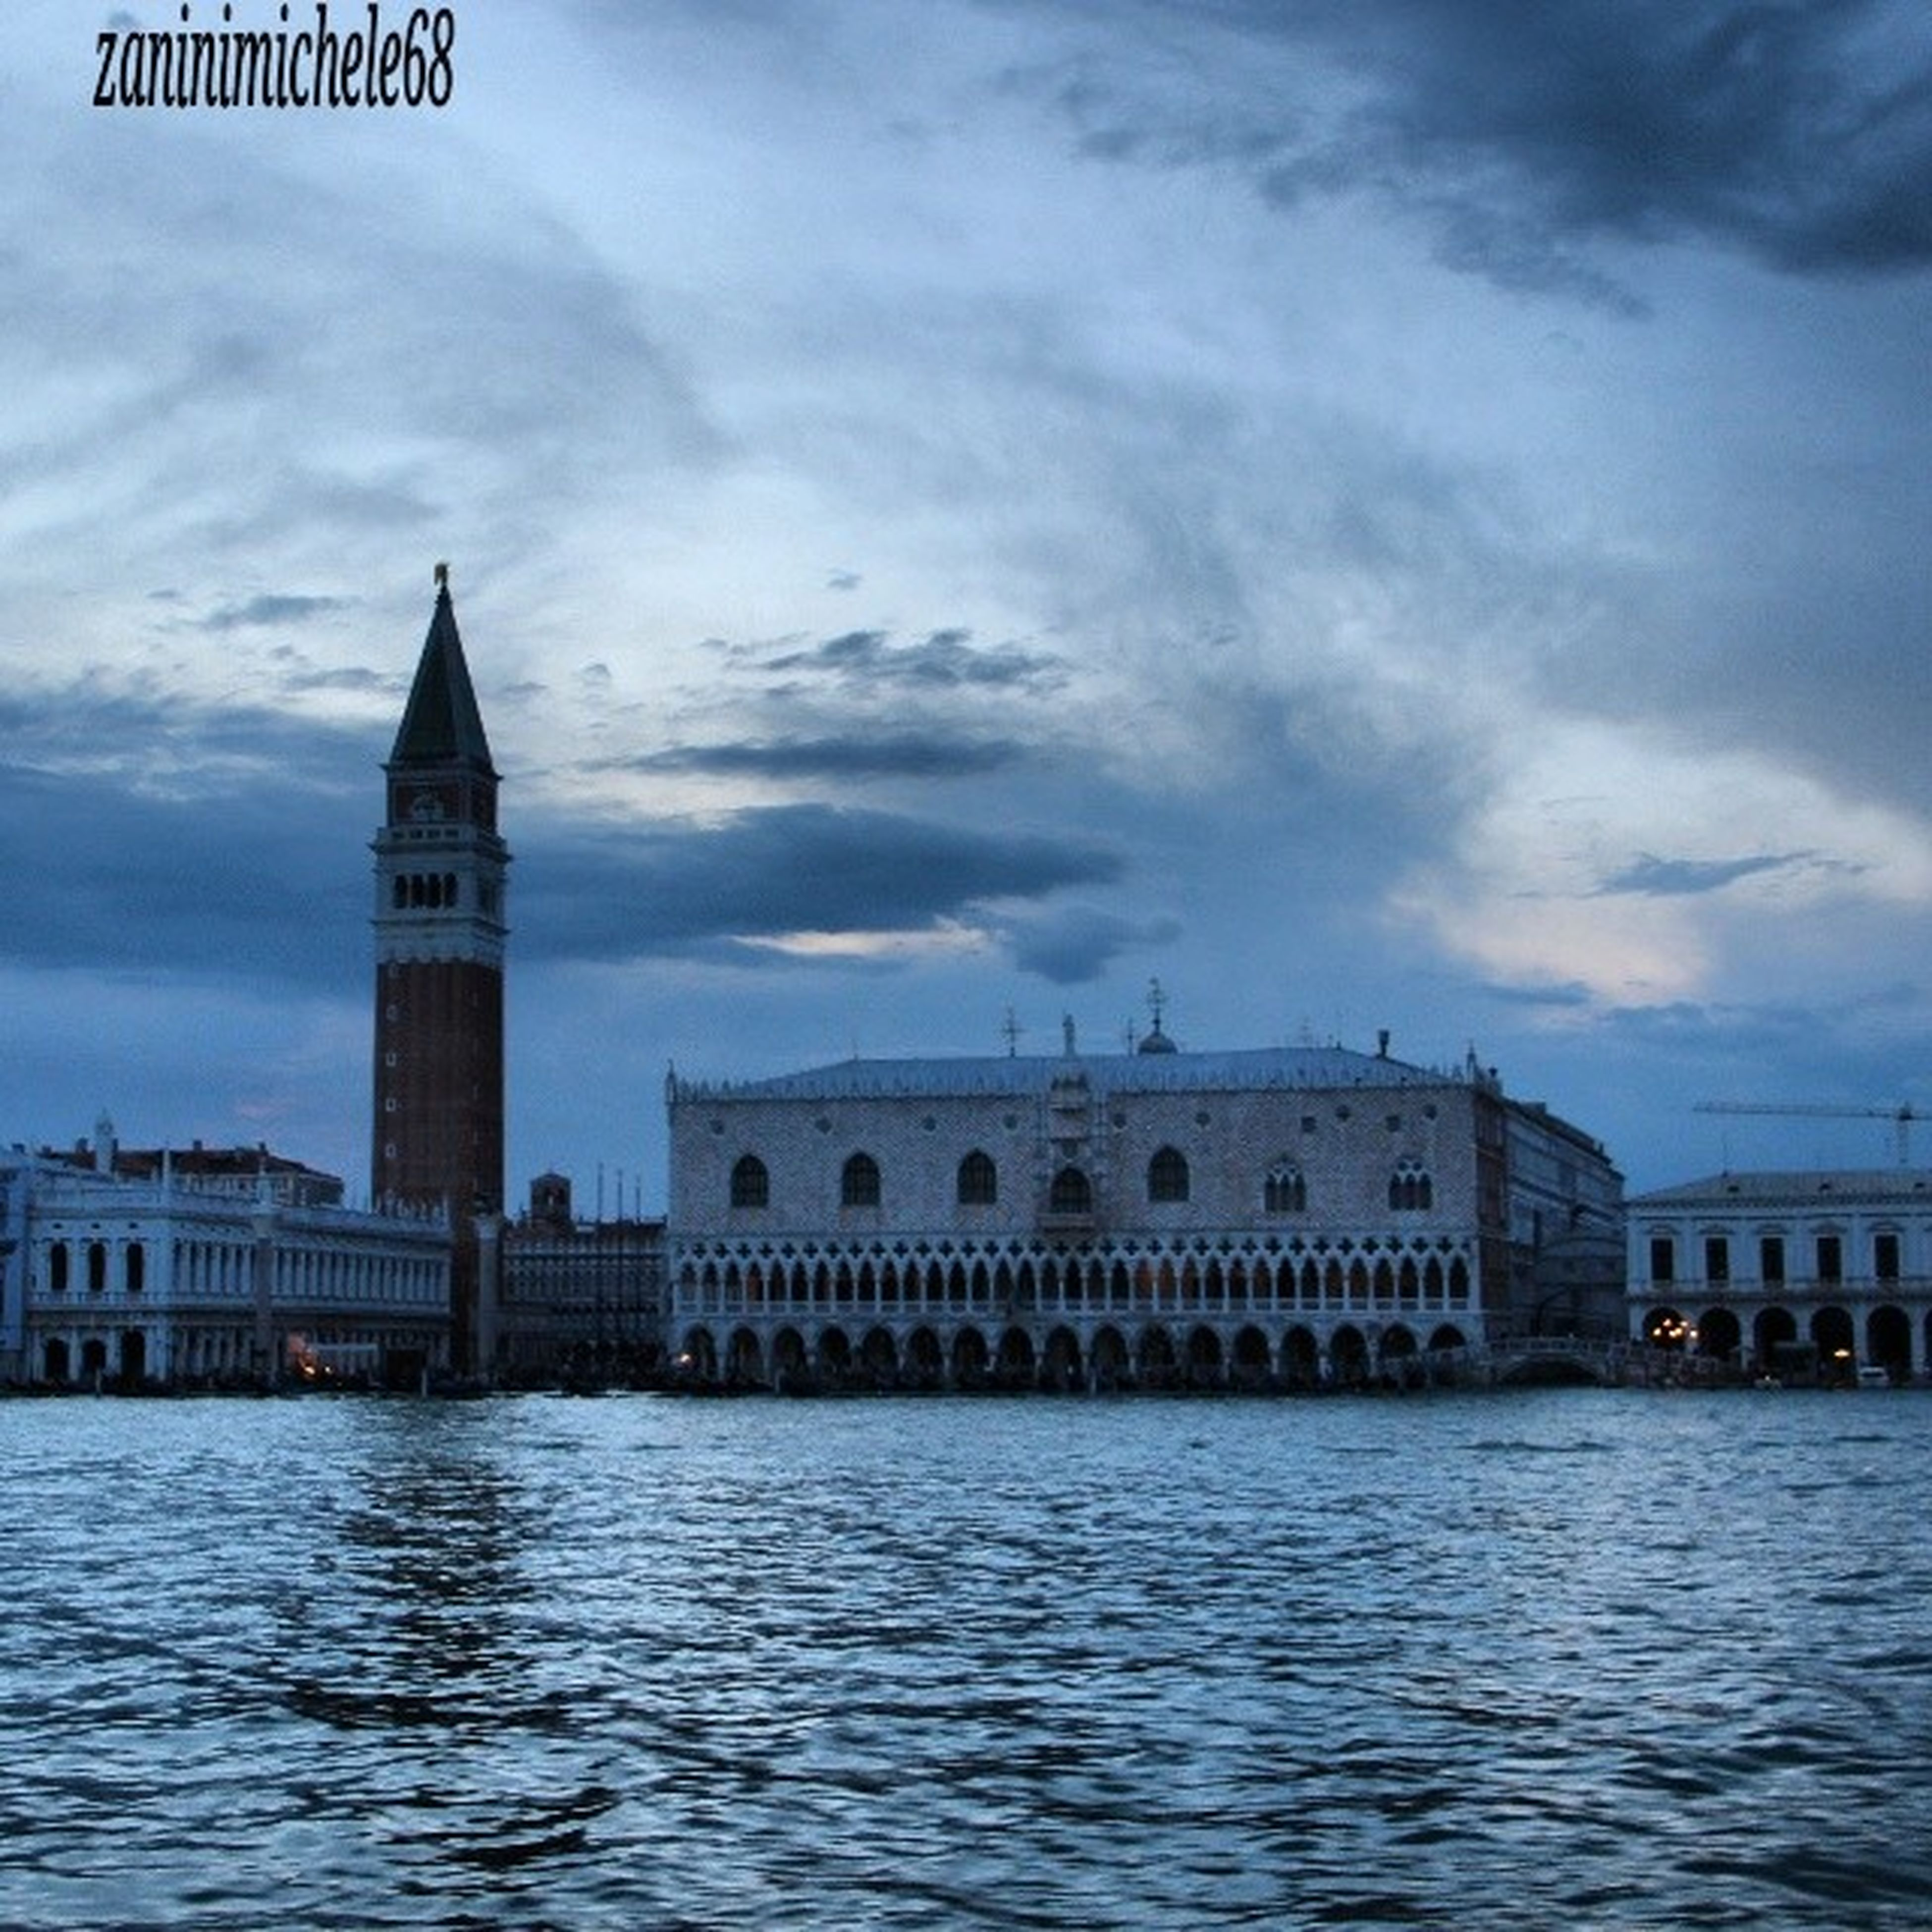 architecture, building exterior, built structure, waterfront, water, sky, cloud - sky, river, rippled, cloudy, city, cloud, church, travel destinations, religion, day, outdoors, history, famous place